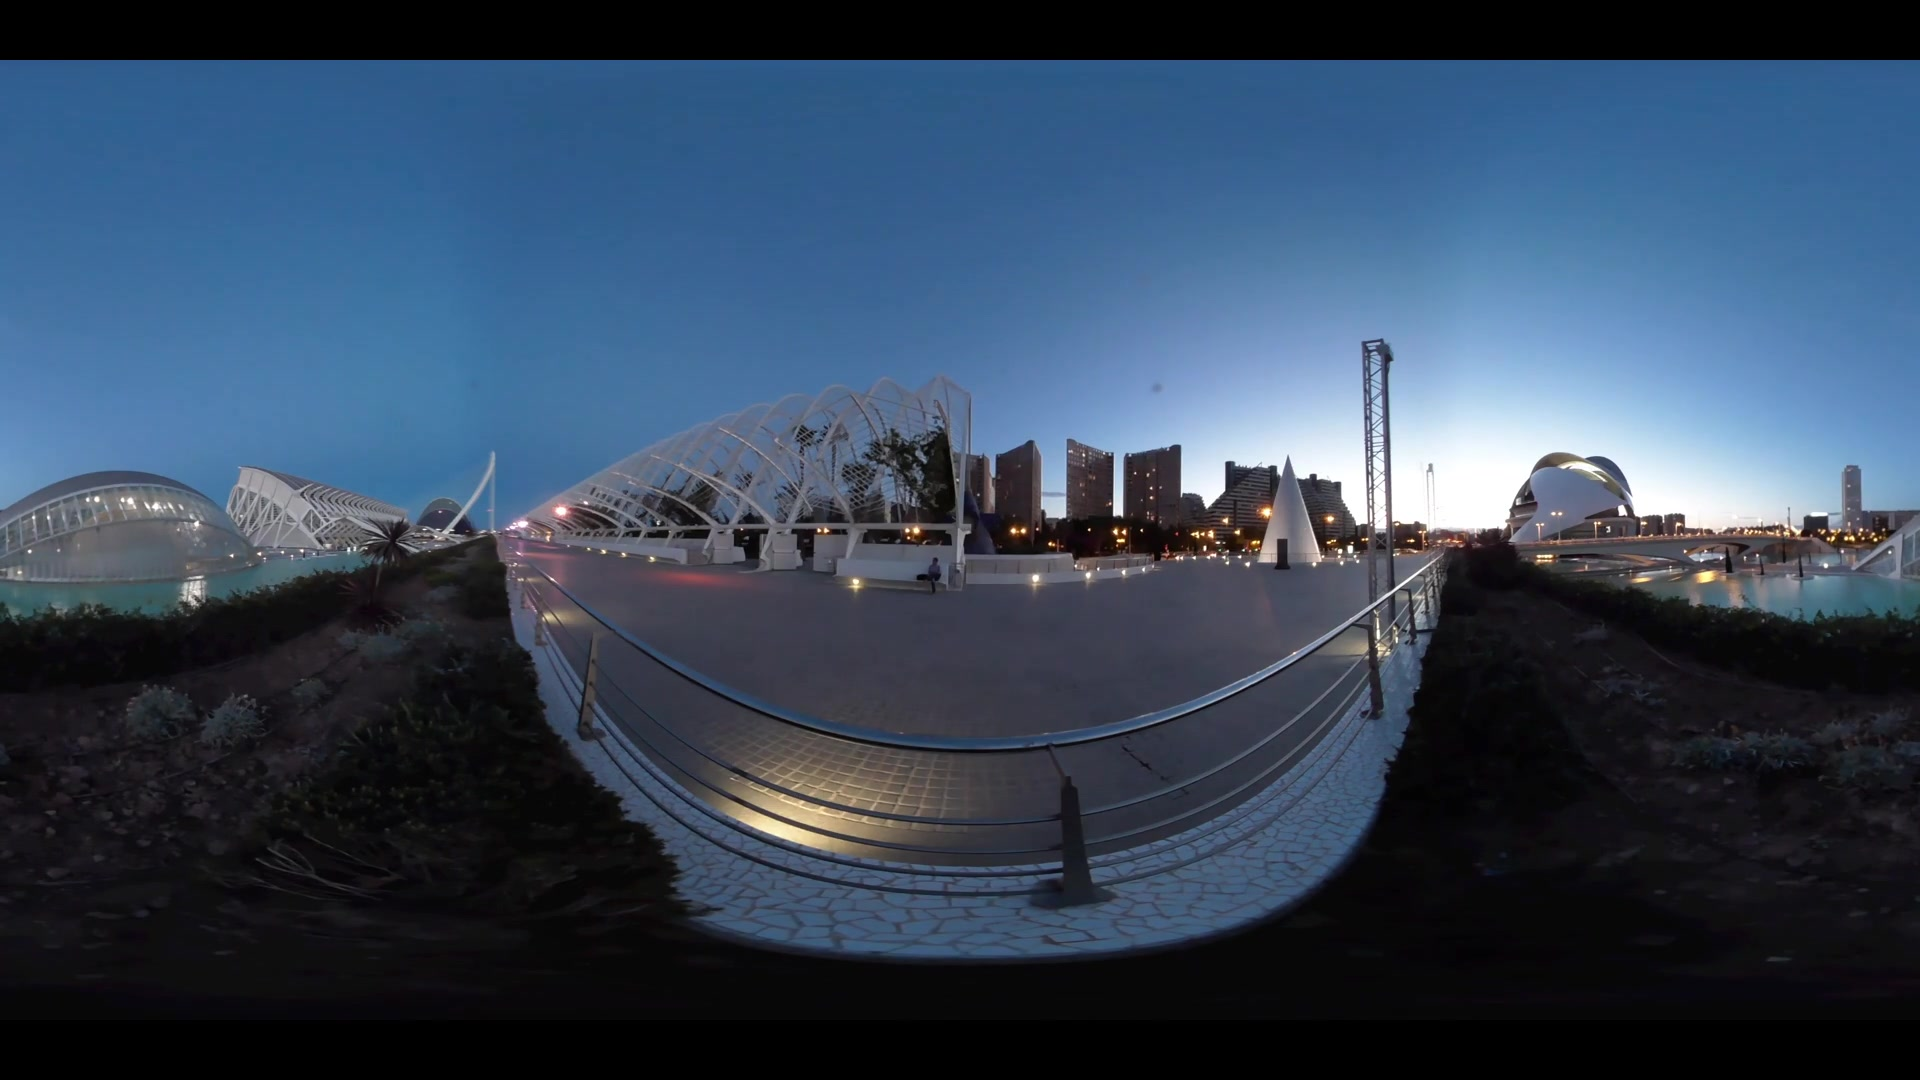 Virtual Reality 360 view from the L'Hemisferic building and the Berklee College of Music at the City of Arts and Sciences in Valencia Spain